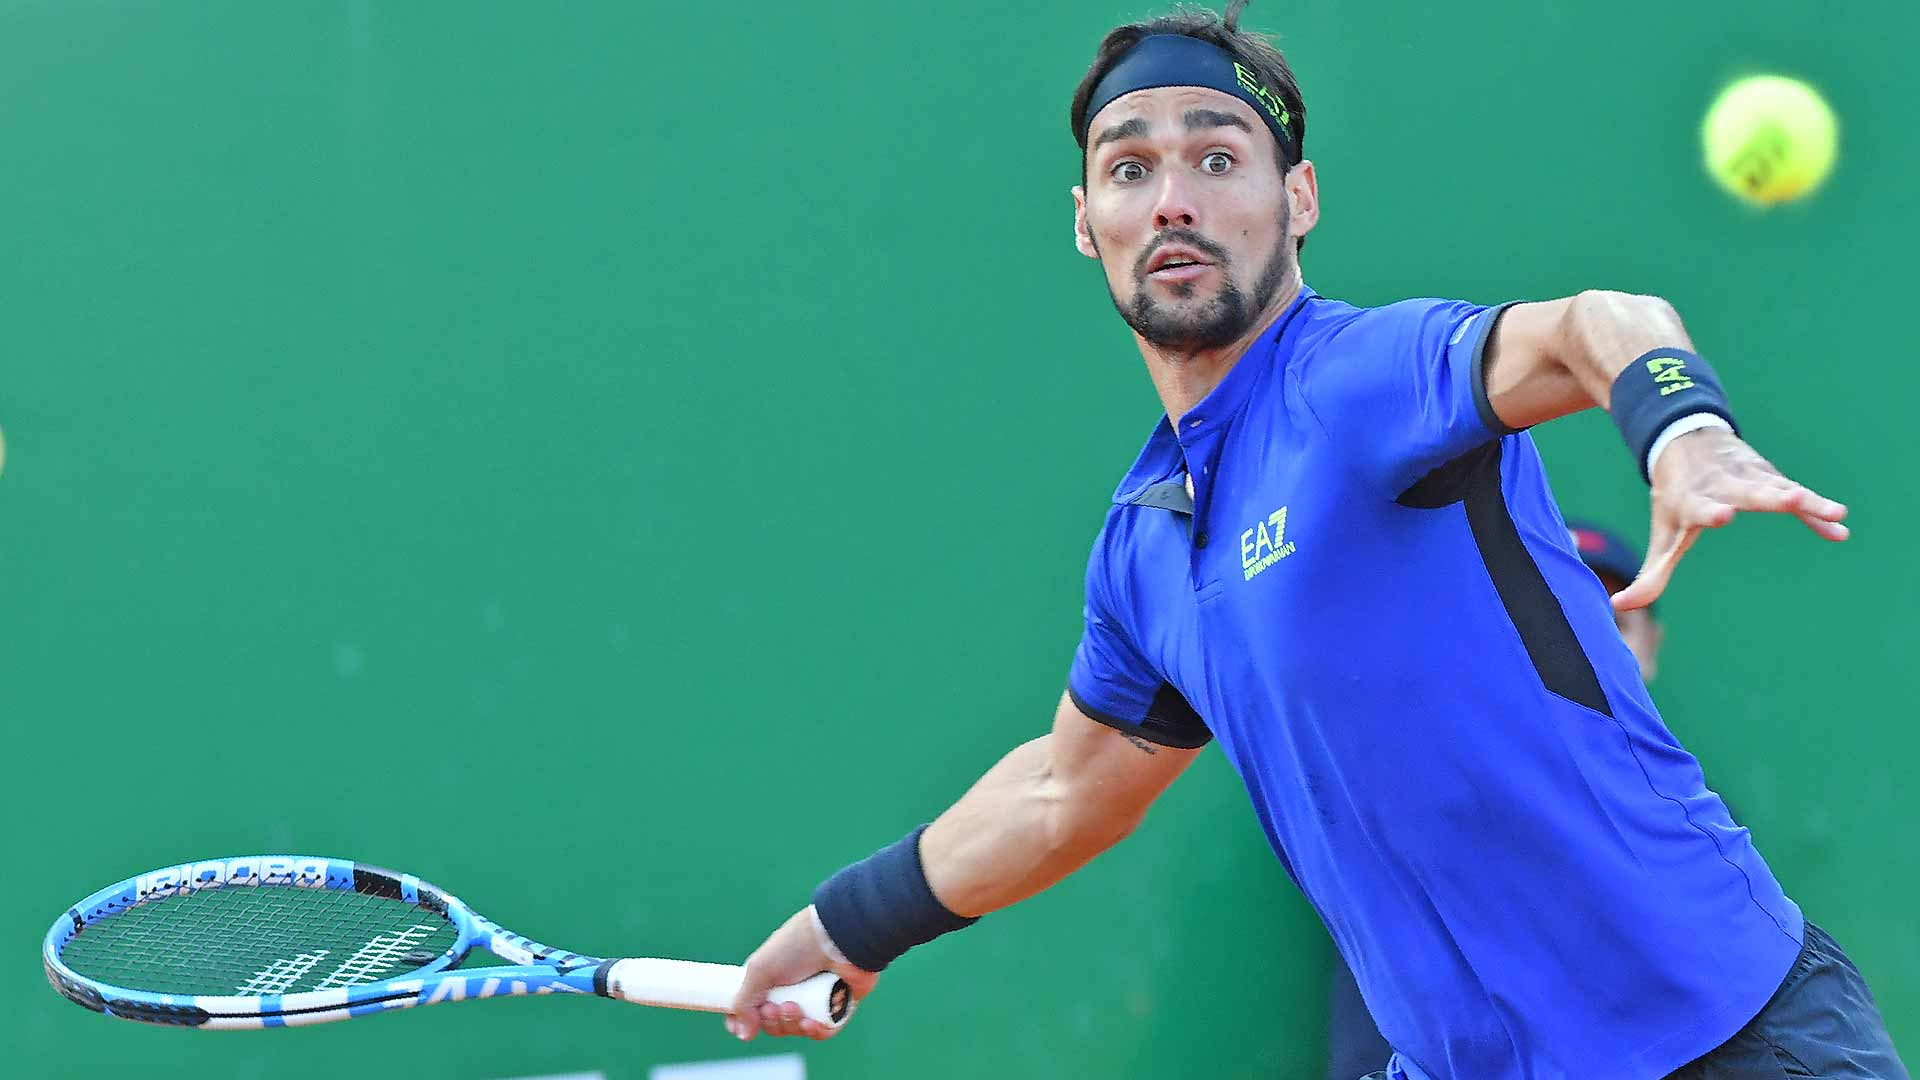 Fabio Fognini vs Reilly Opelka Tennis Live Stream – 26-Aug – Mens US Open